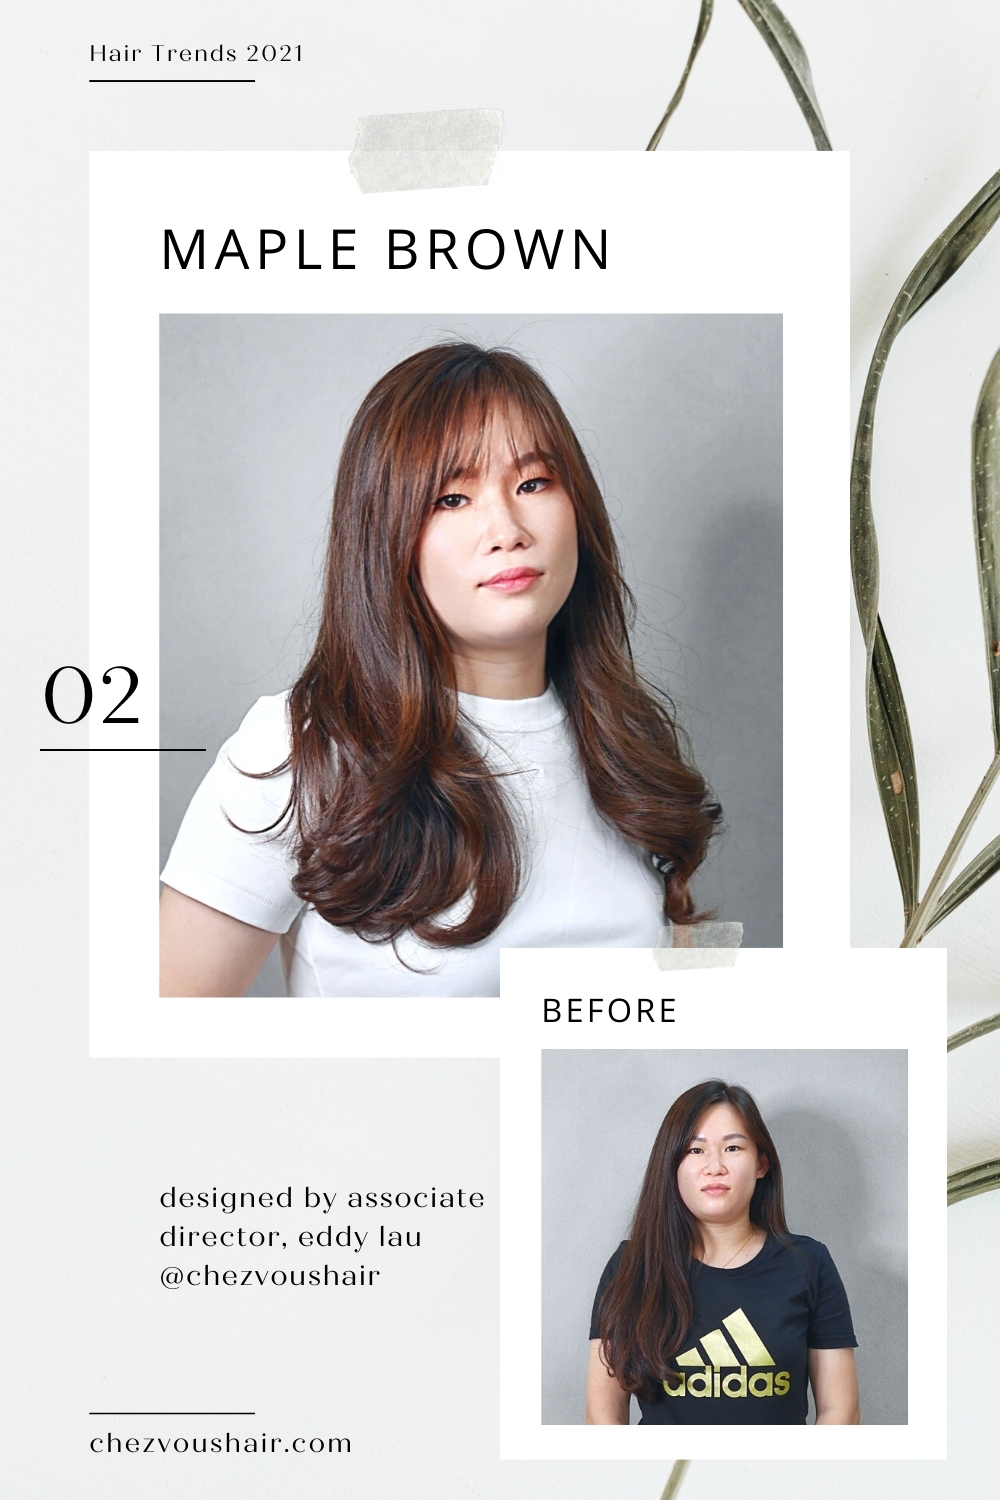 Hair Trends 2021: Maple Brown is Raging in Asia